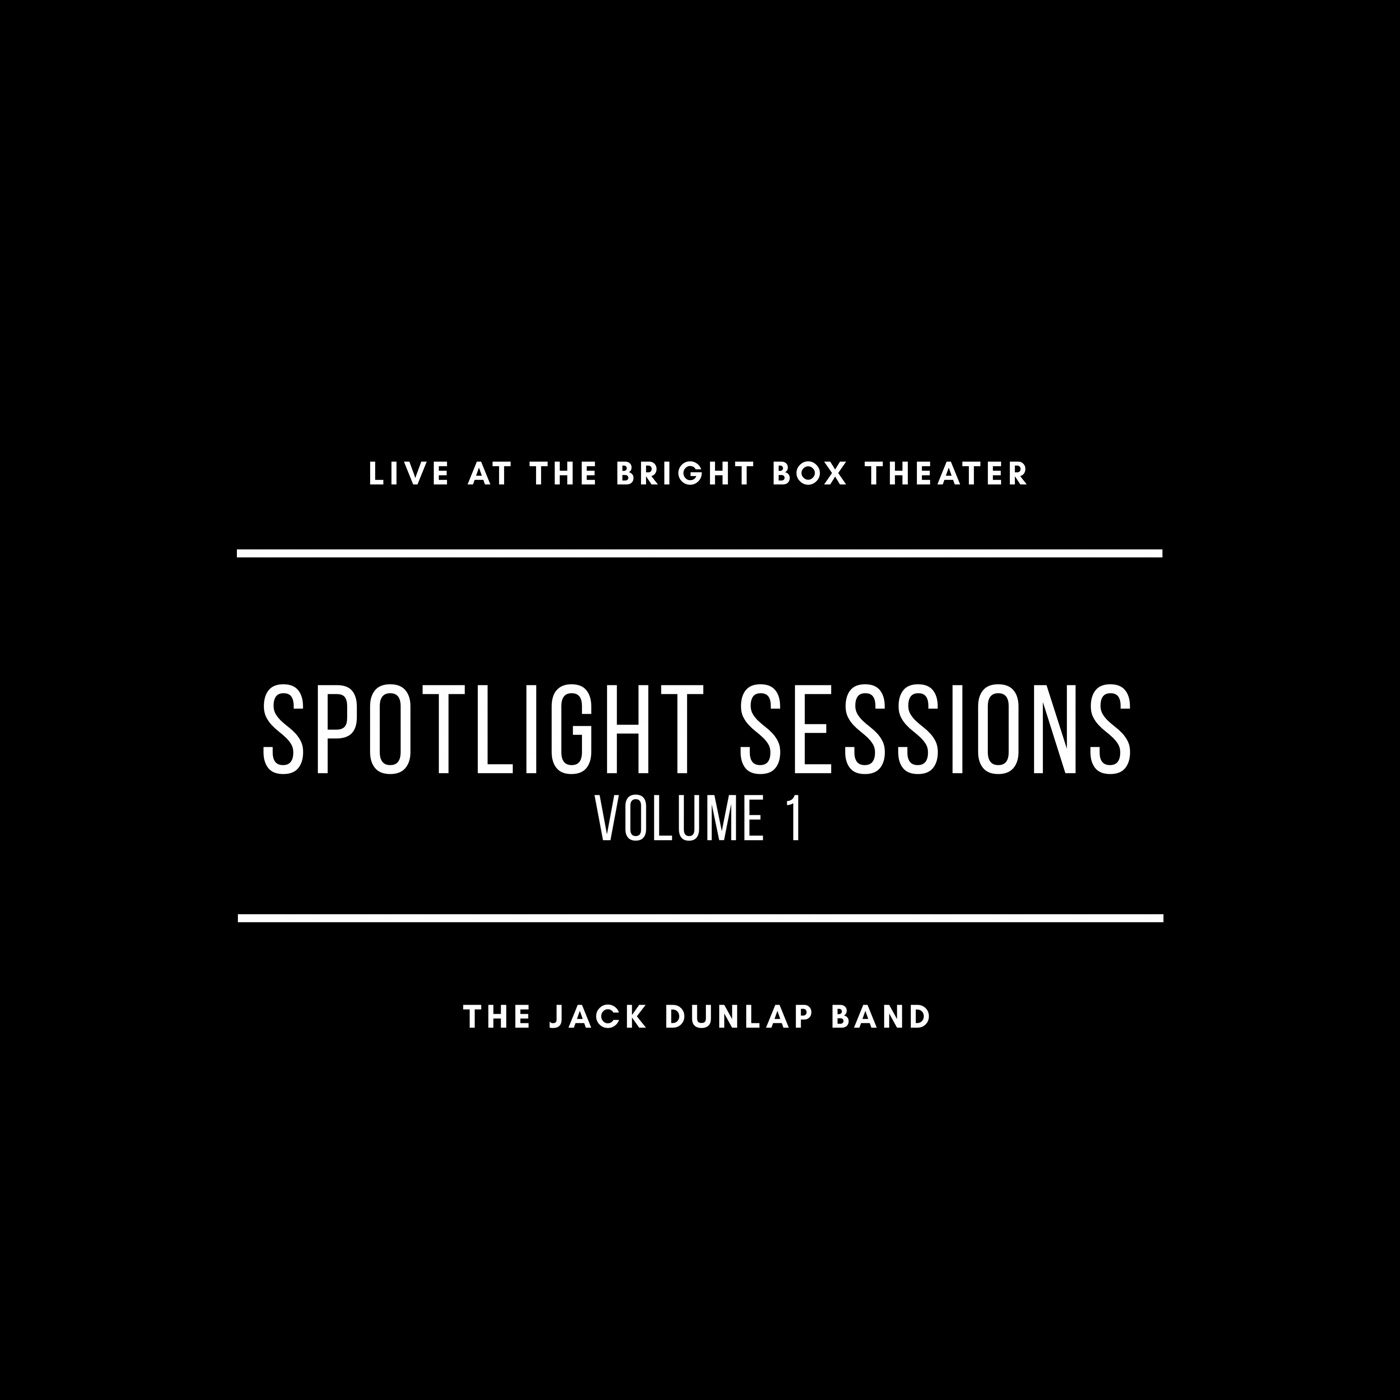 SPOTLIGHT SESSIONS: VOLUME 1 PREORDERS ARE NOW BEING TAKEN!     RESERVE YOUR COPY TODAY!